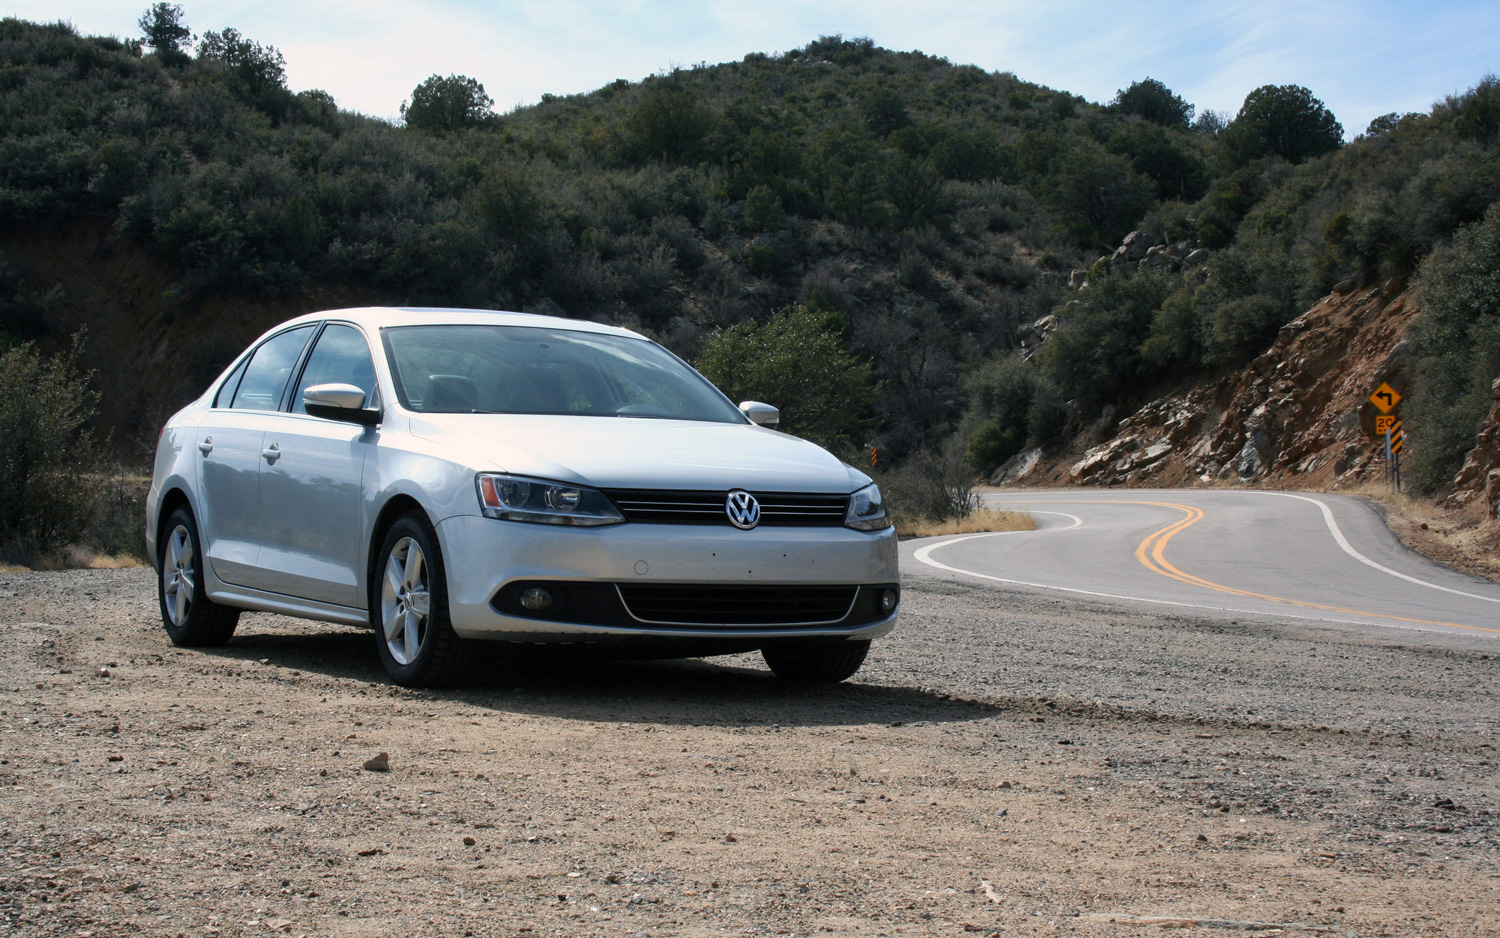 medium resolution of 2011 volkswagen jetta tdi long term update 8